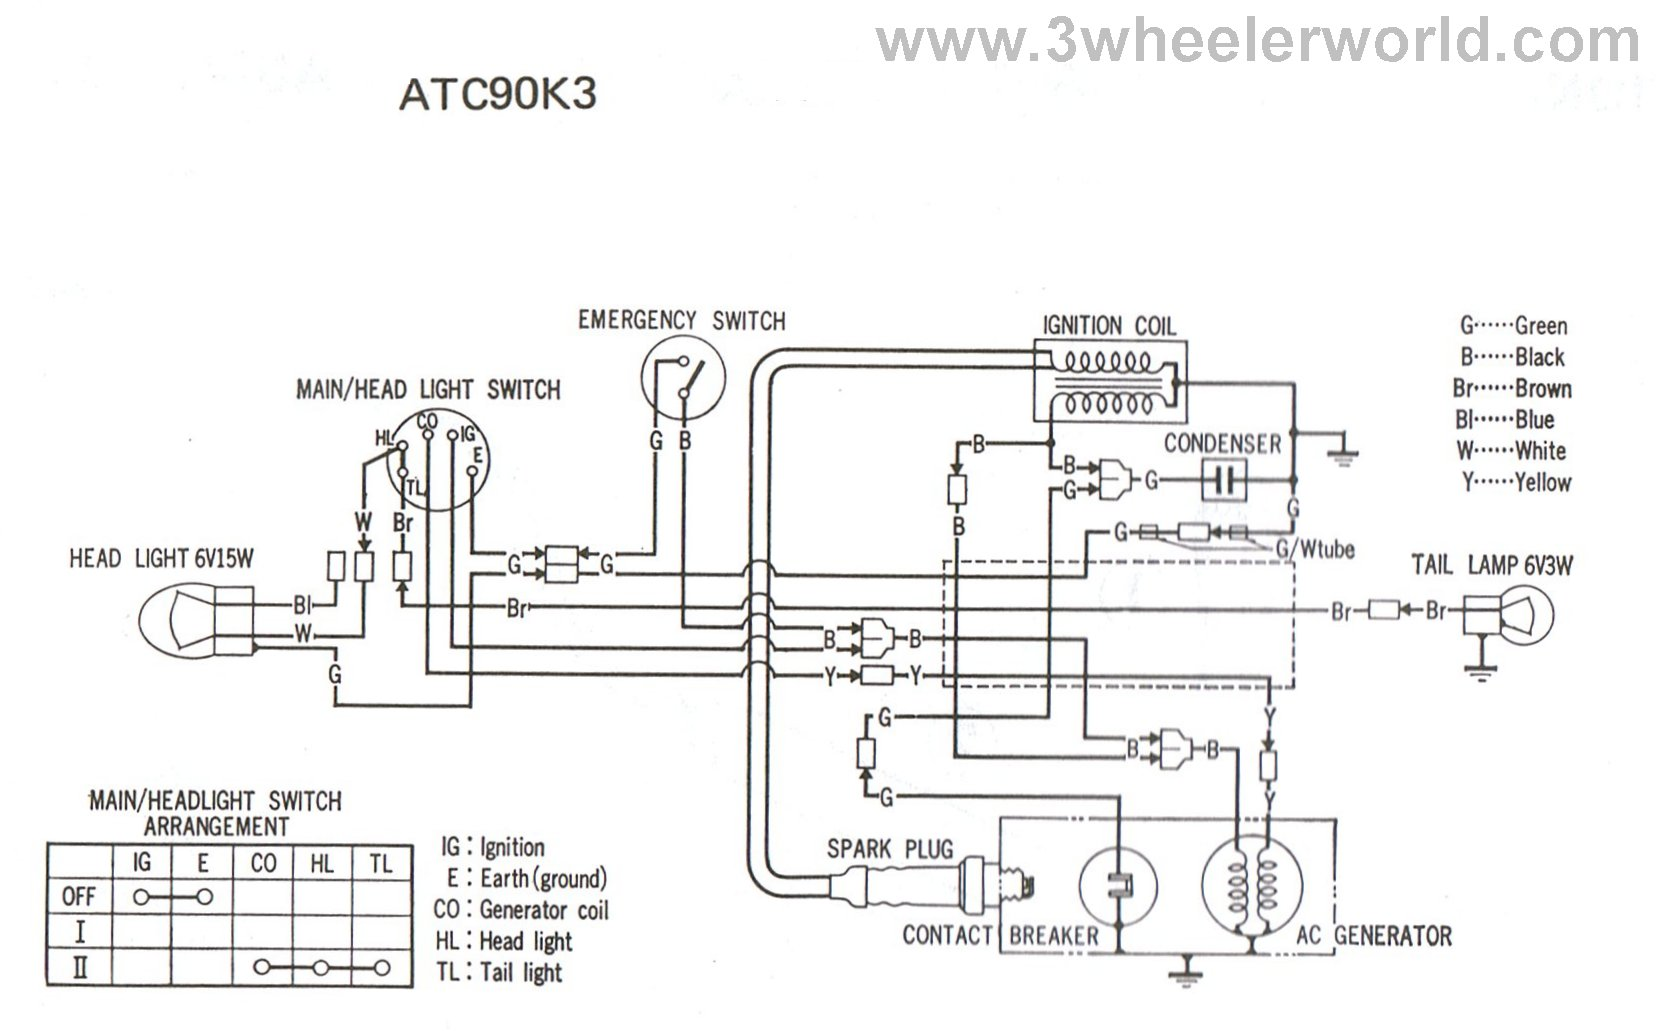 ATC90K3HM polaris predator 90 wiring diagram polaris 90 service manual 1996 polaris explorer 400 wiring diagram at n-0.co